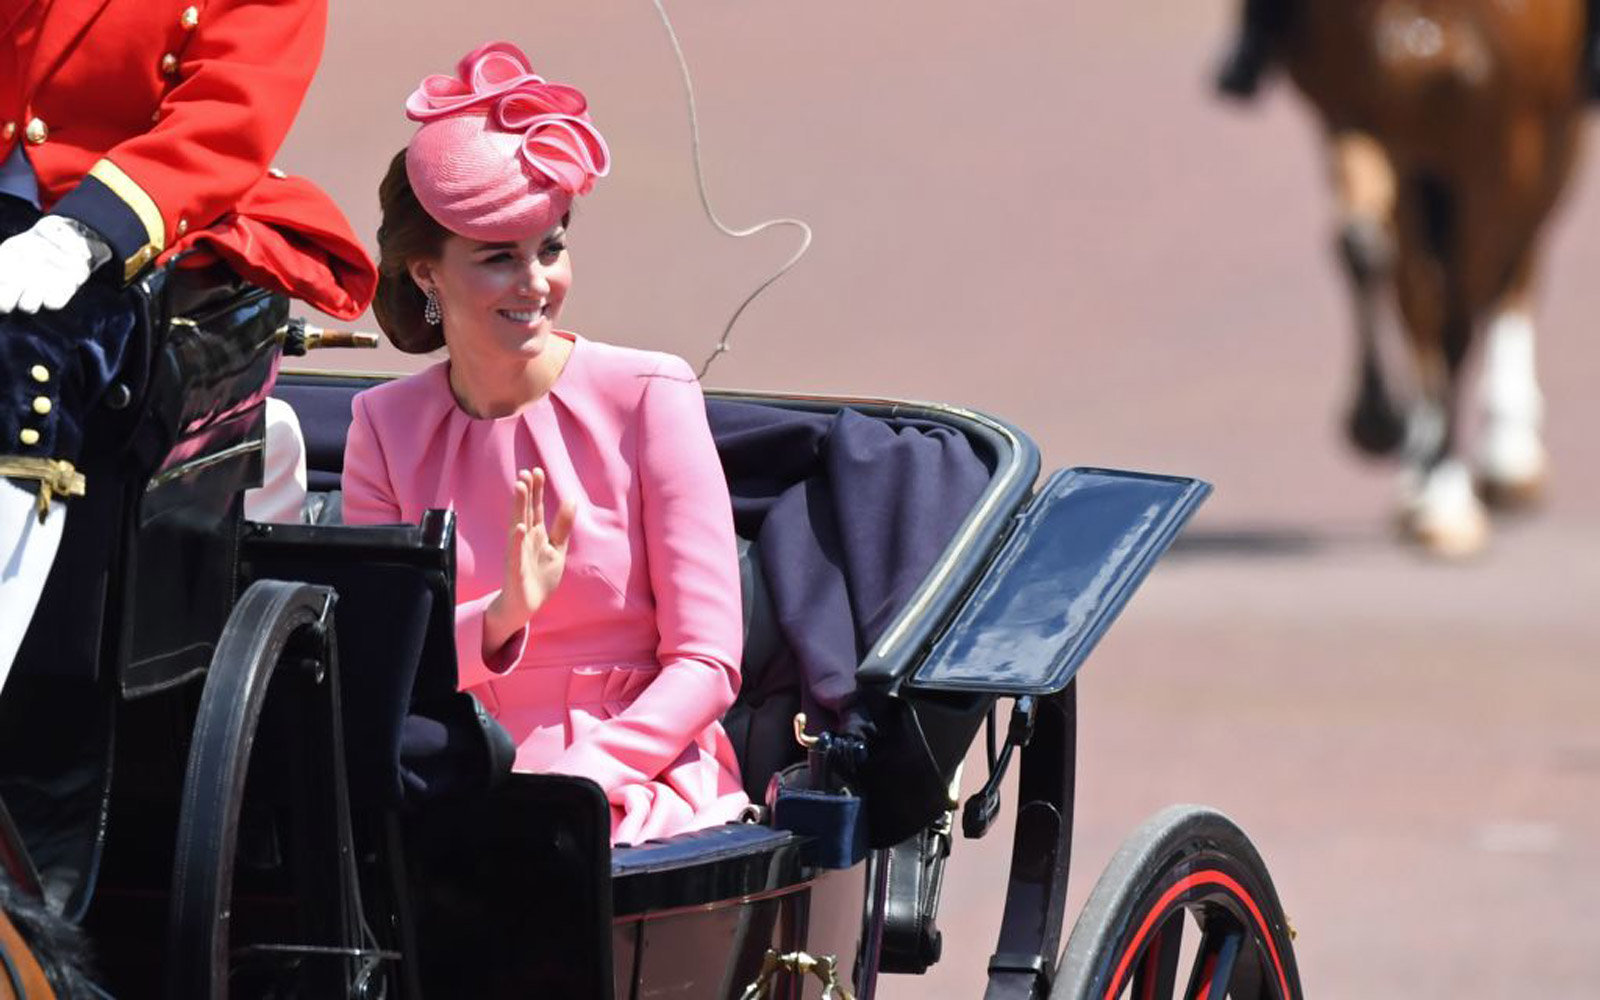 Britain's Catherine, Duchess of Cambridge waves as she travels in a horse-drawn carriage back to Buckingham Palace after attending 'Trooping the Colour' on Horse Guards Parade to mark the Queen's official birthday, in London on June 17, 2017.The ceremo